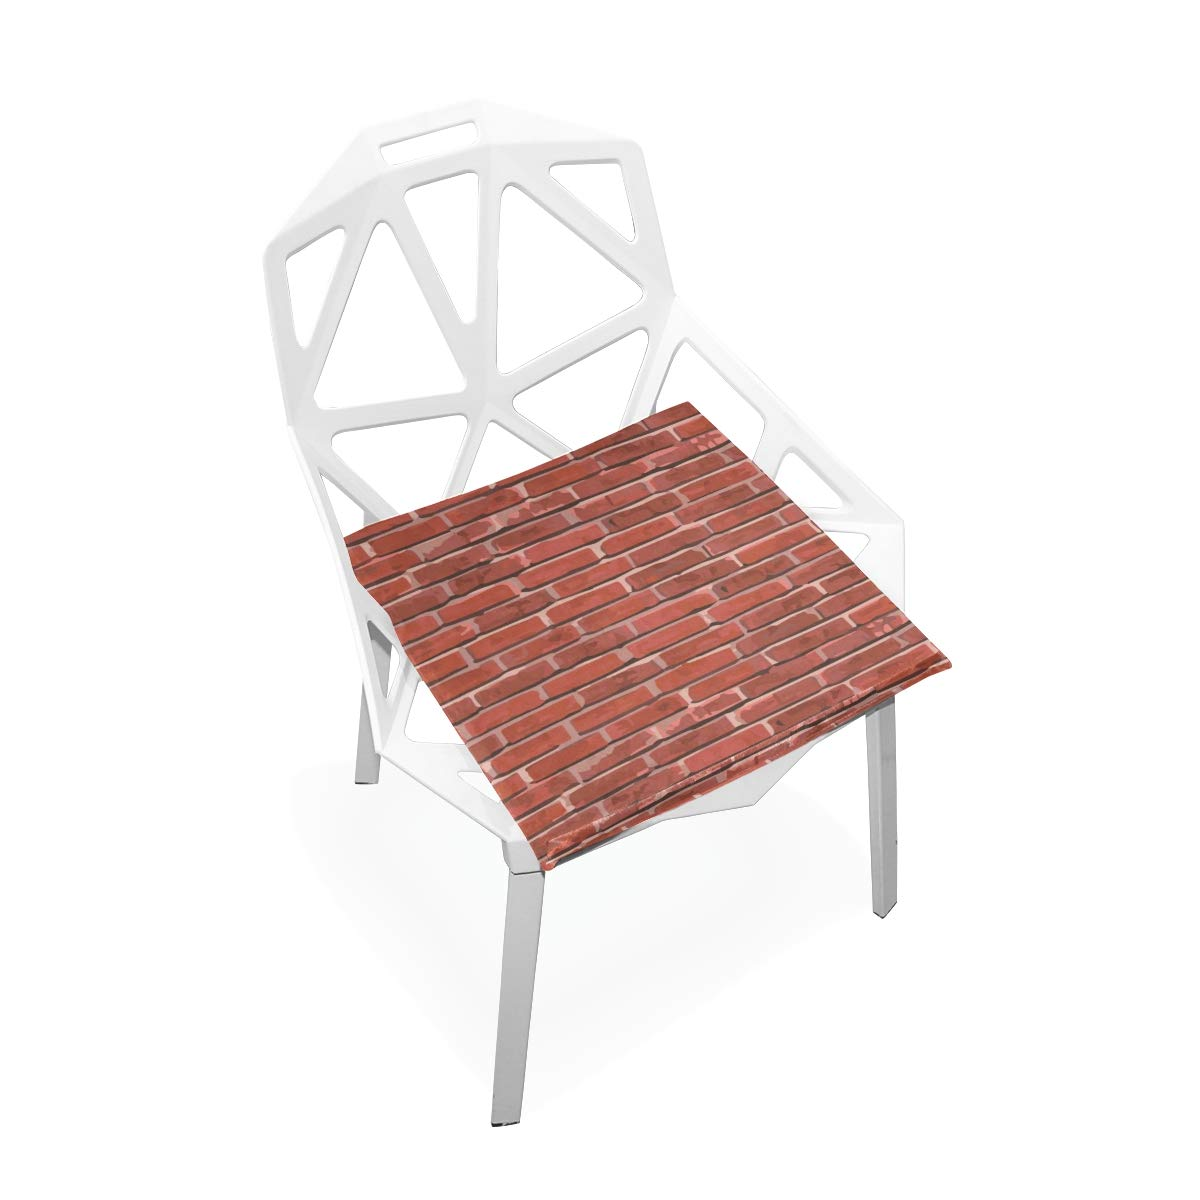 TSWEETHOME Comfort Memory Foam Square Chair Cushion Seat Cushion with Brick Wall Texture Chair Pads for Floors Dining Office Chairs